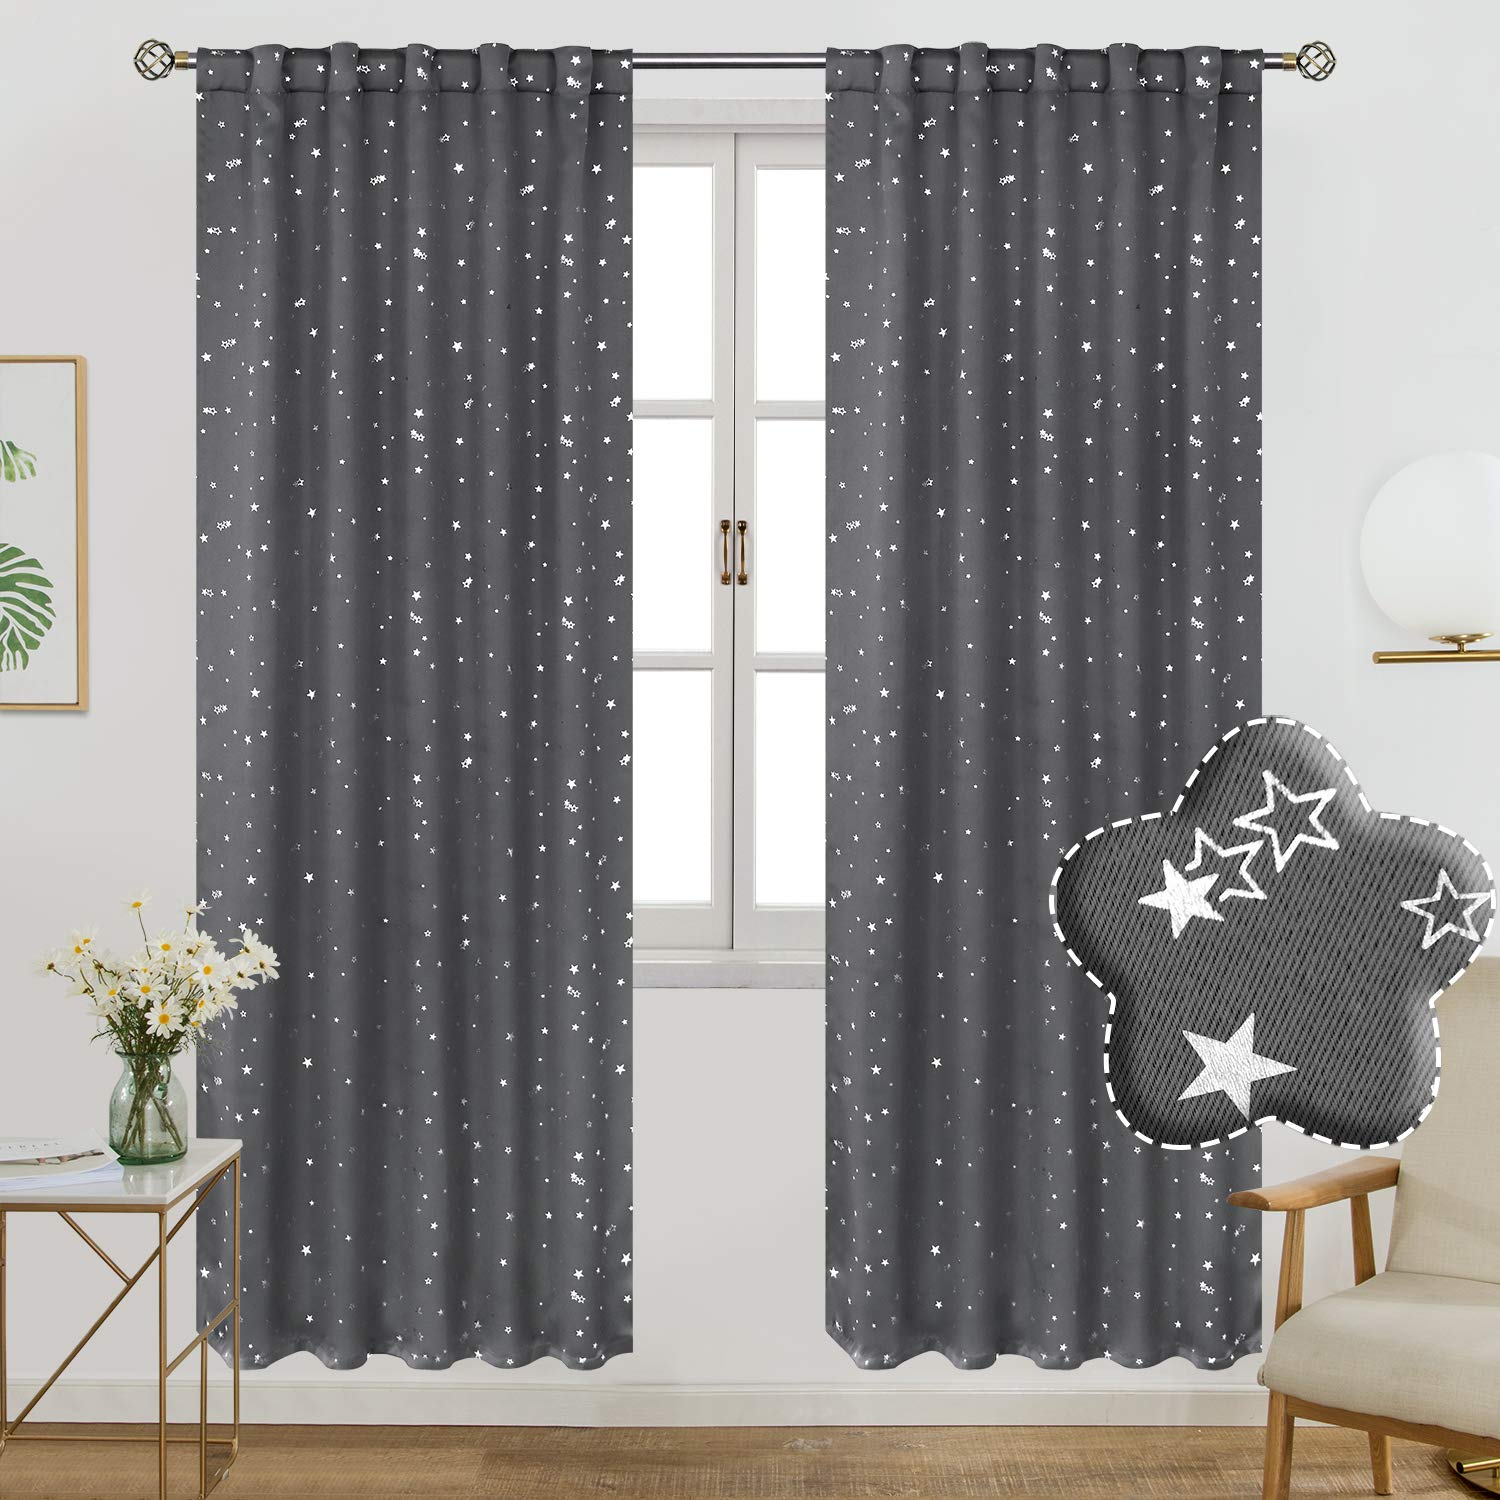 Navy Blue 2 Panels 55 x 96 Inch BGment Rod Pocket and Back Tab Blackout Curtains for Kids Bedroom Sparkly Star Printed Thermal Insulated Room Darkening Curtain for Nursery